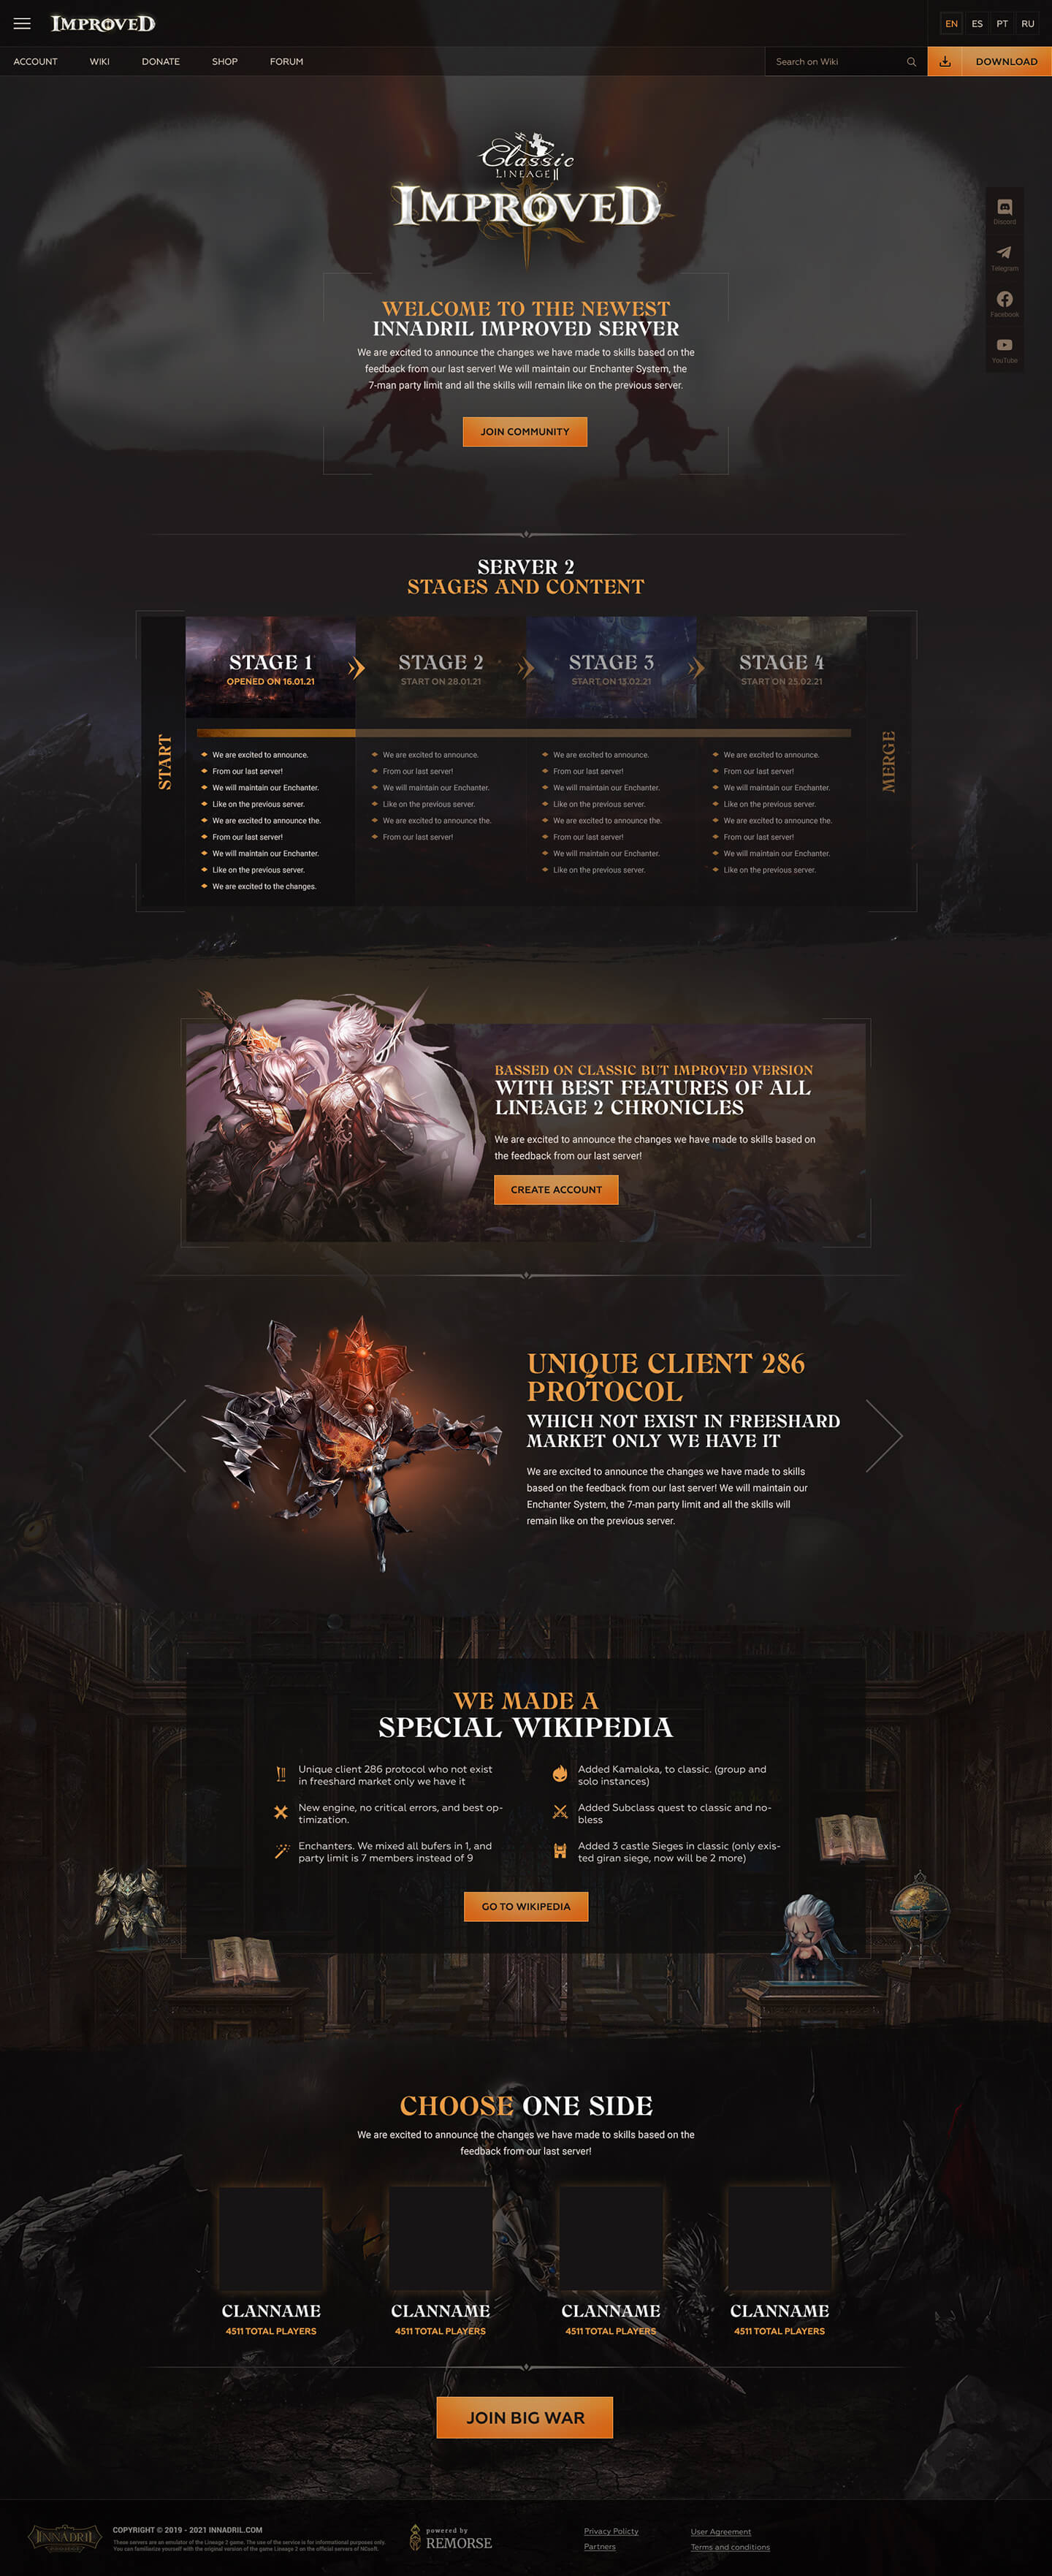 Innadril.Improved > Landing page for Lineage 2 private server. Landing page